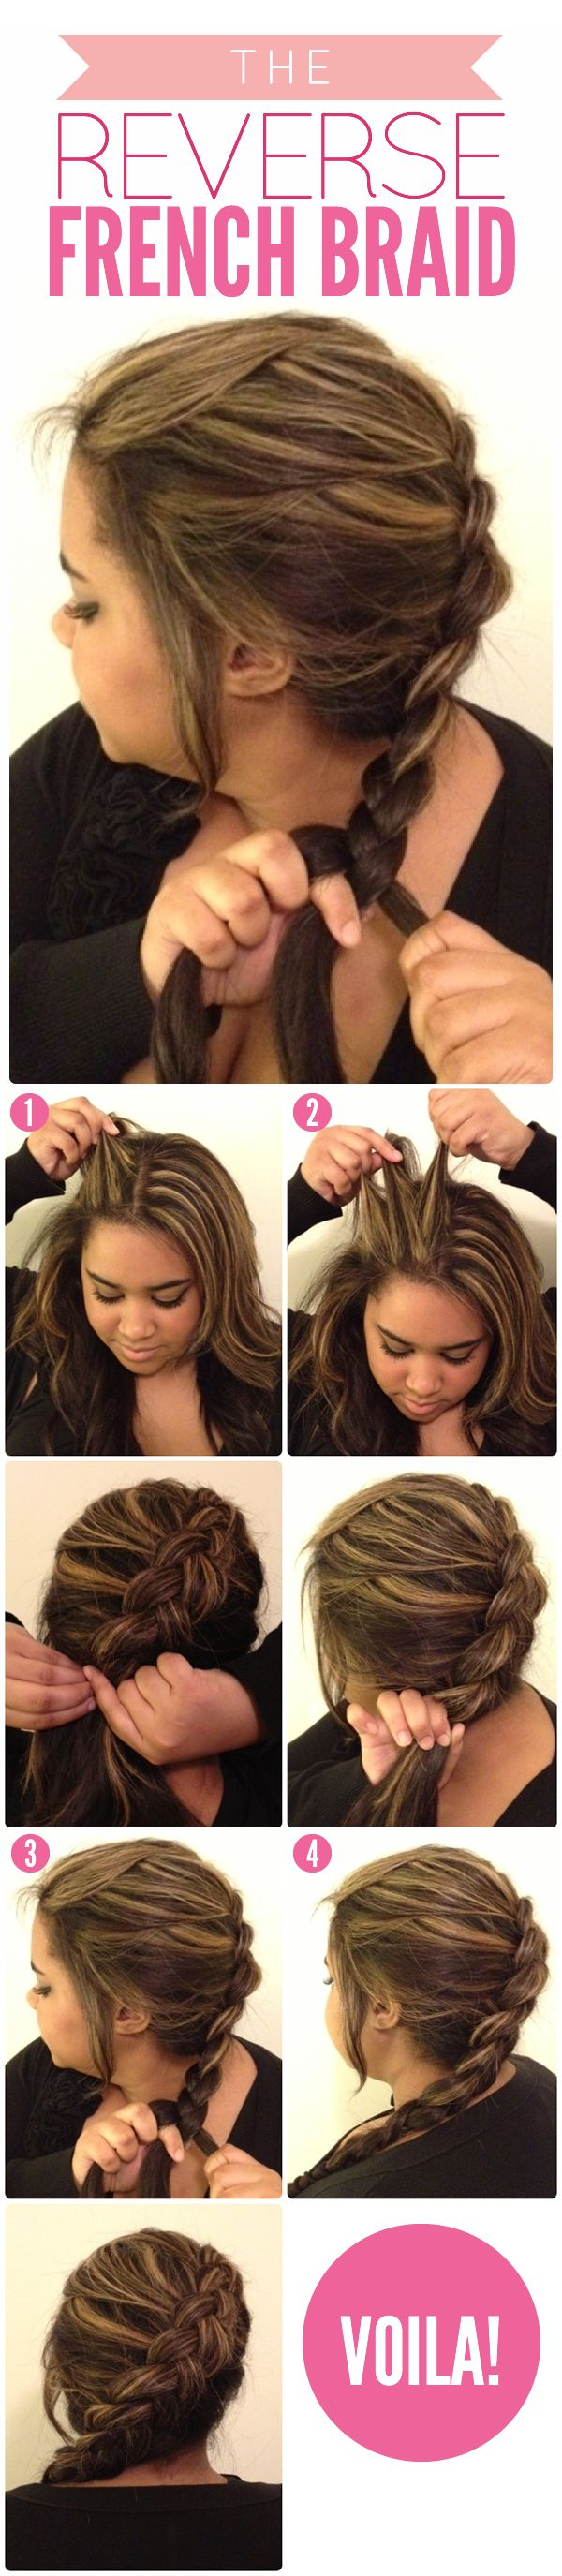 THE REVERSE FRENCH BRAID-Top 15 Easy-To-Make Braids Tutorials